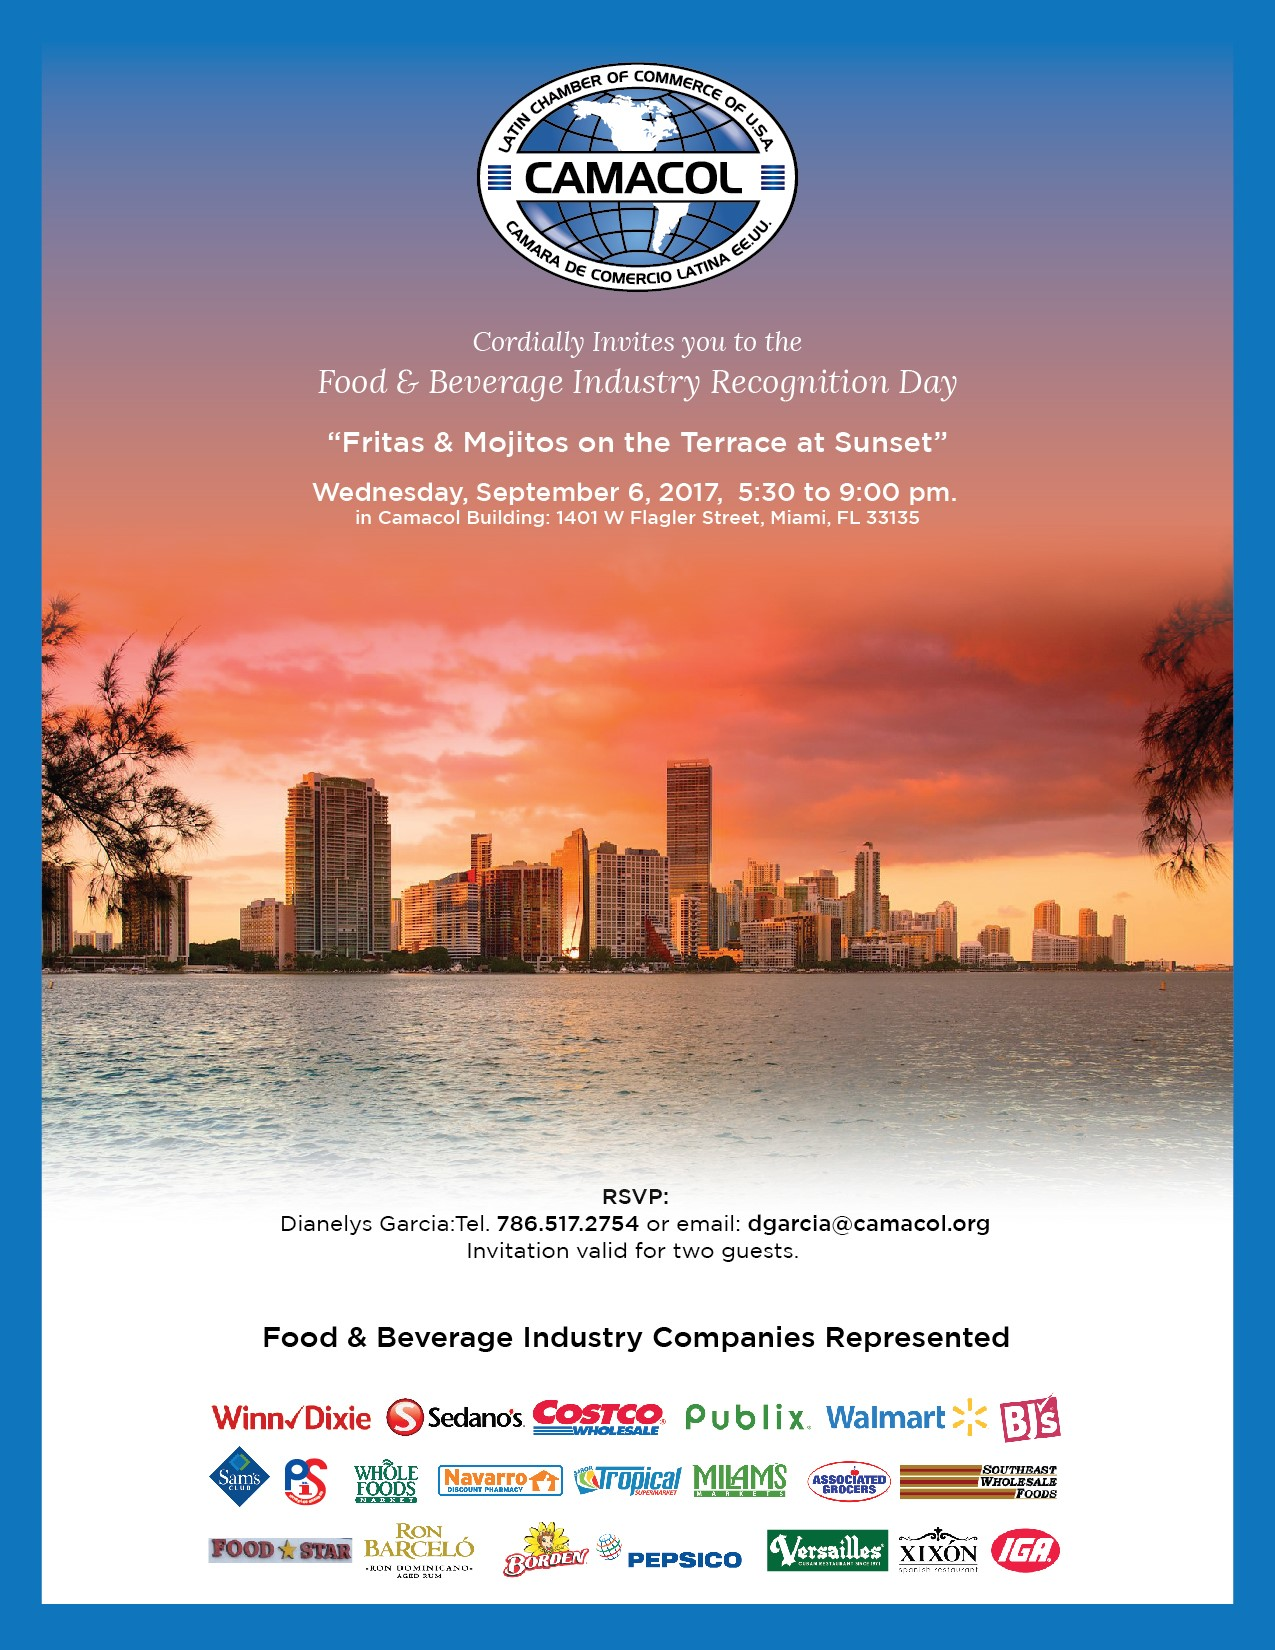 Food & Beverage Industry Recognition Day